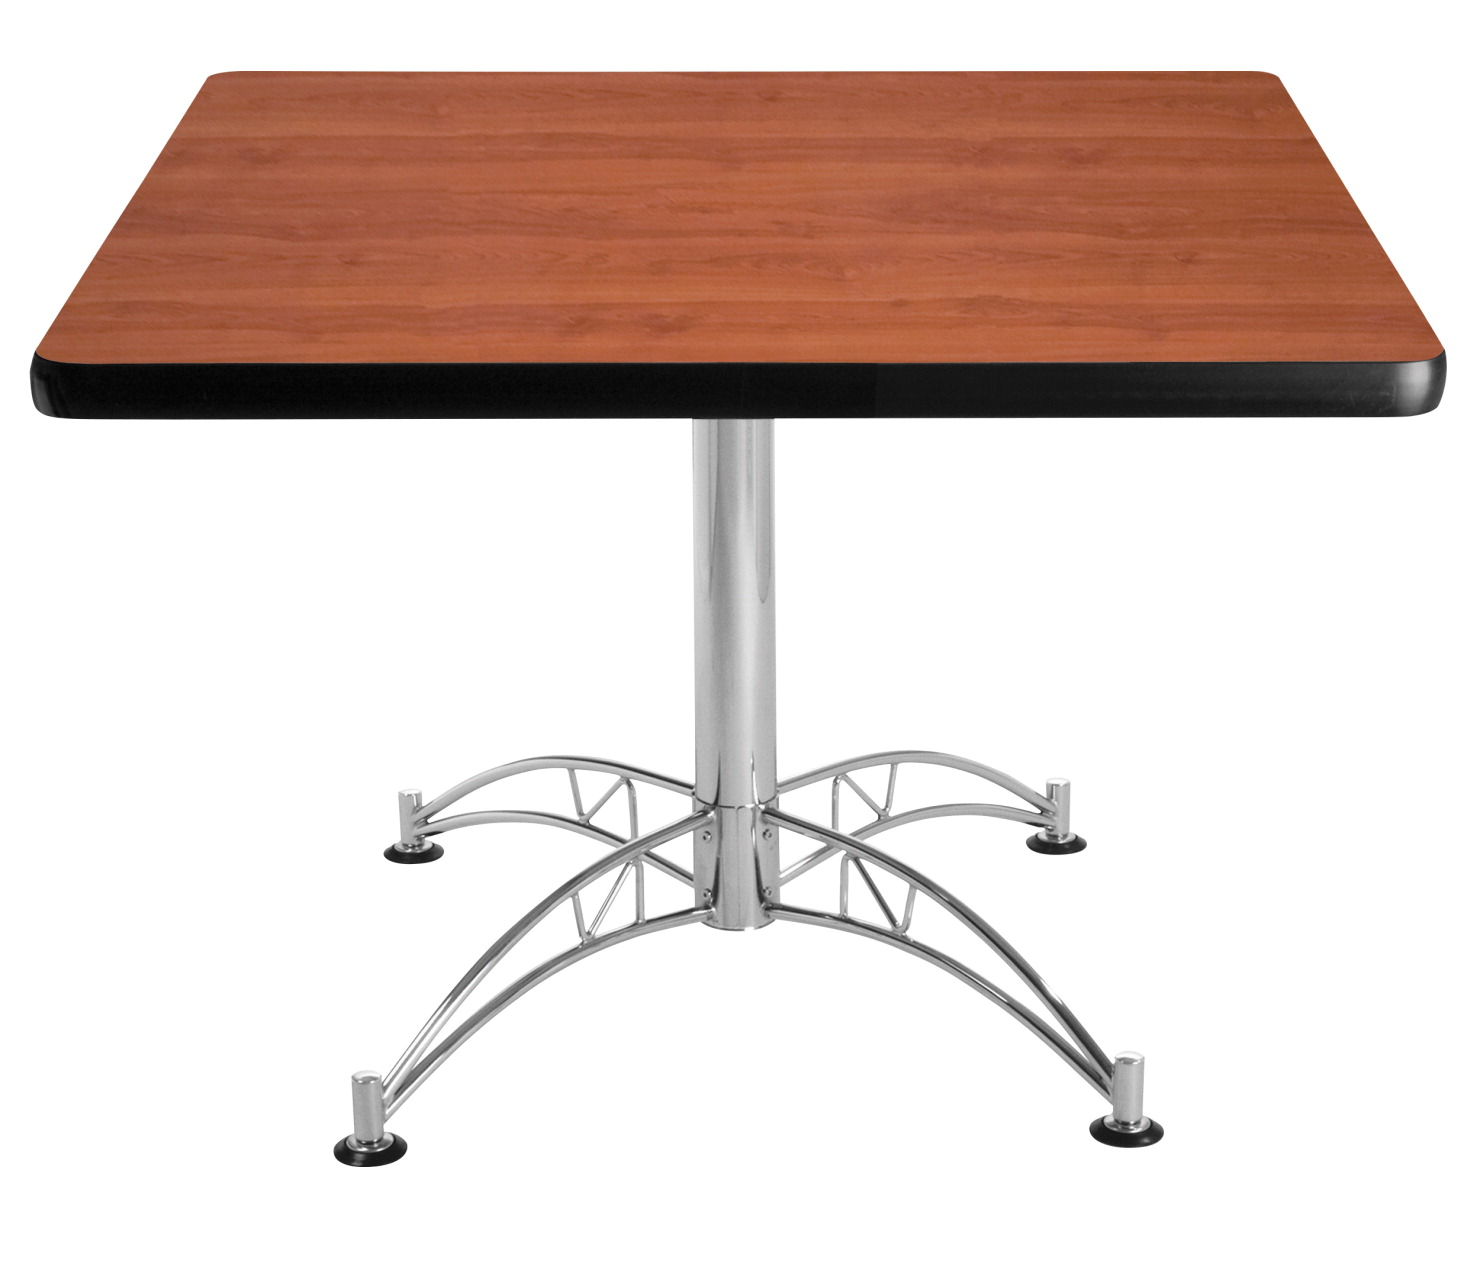 Activity table soar life products for Table design using jsp